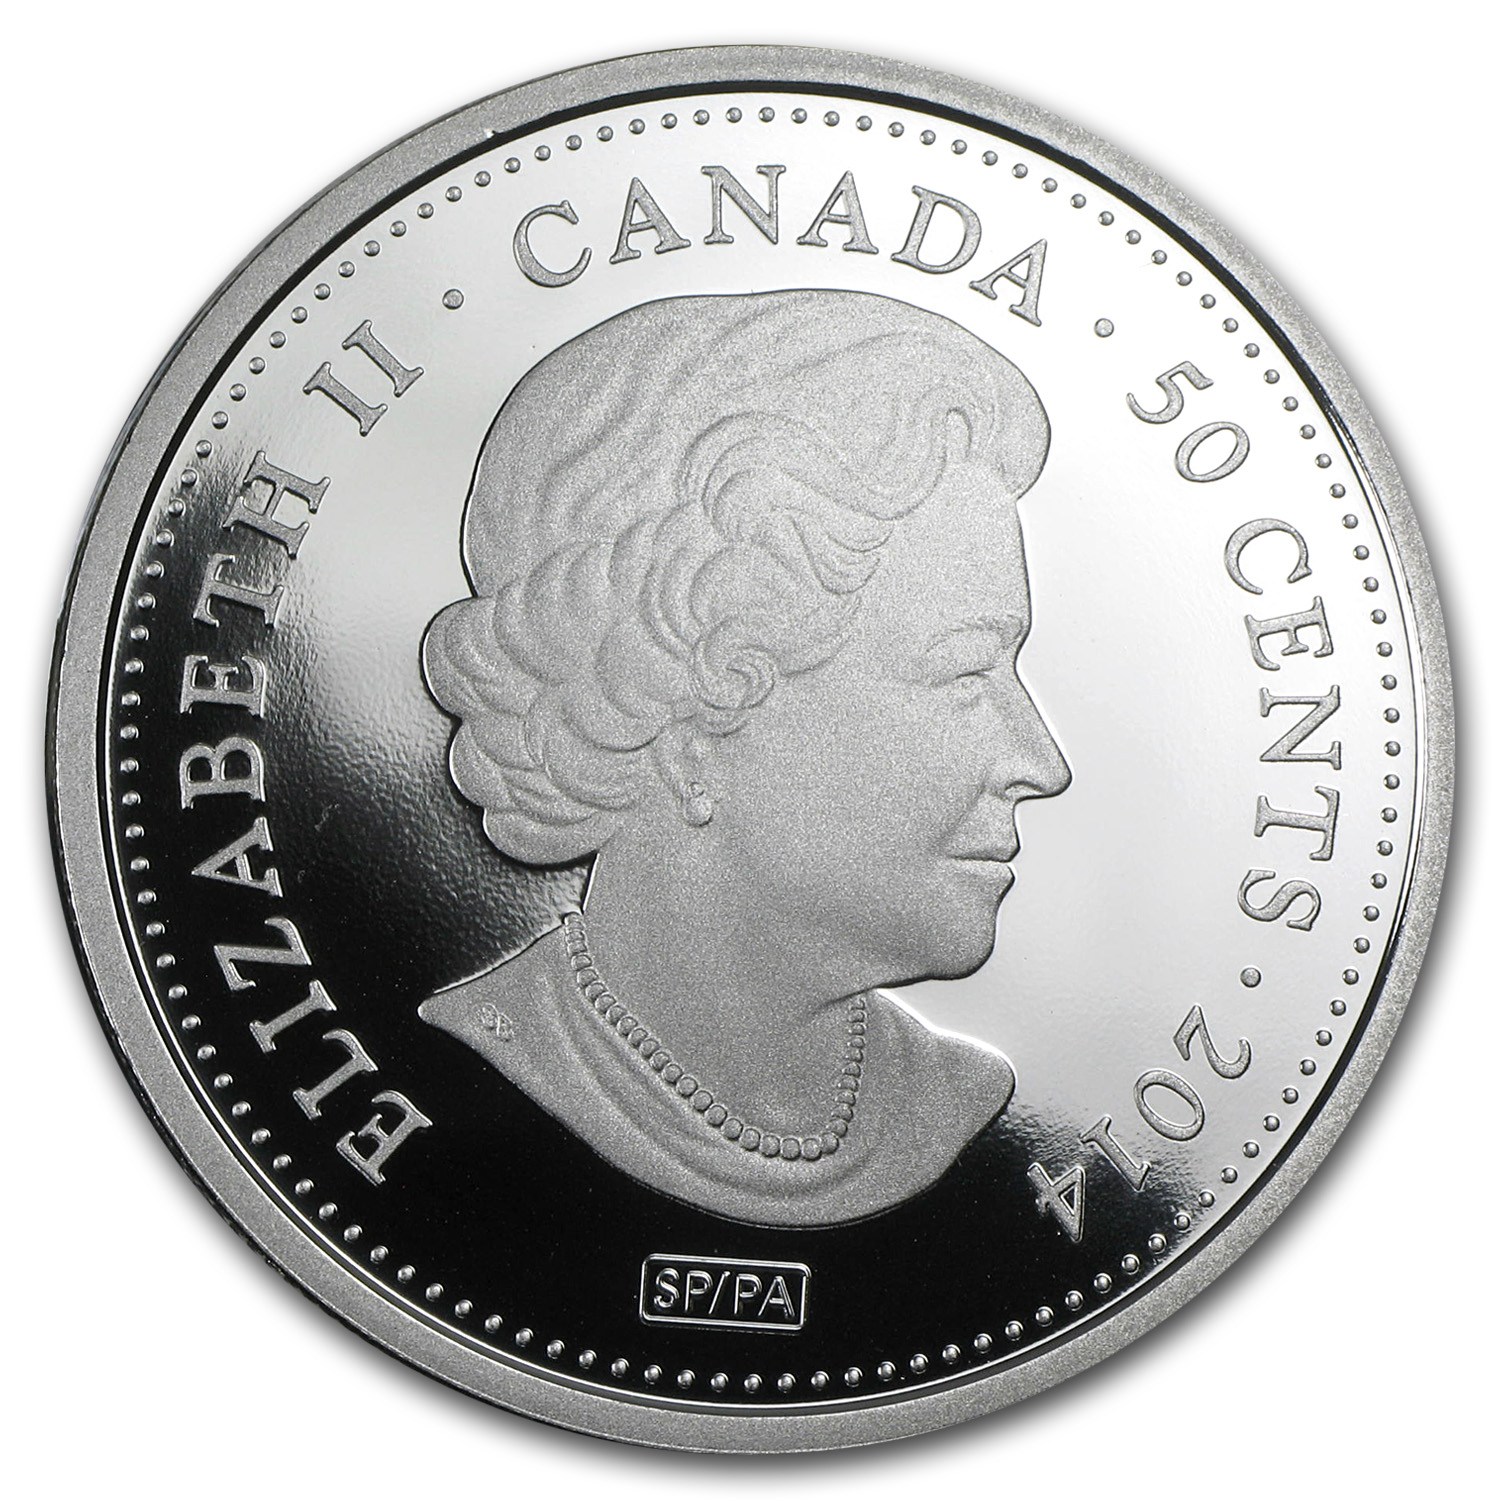 2014 Silver-Plated Canadian $0.50 - 100 Blessings of Good Fortune